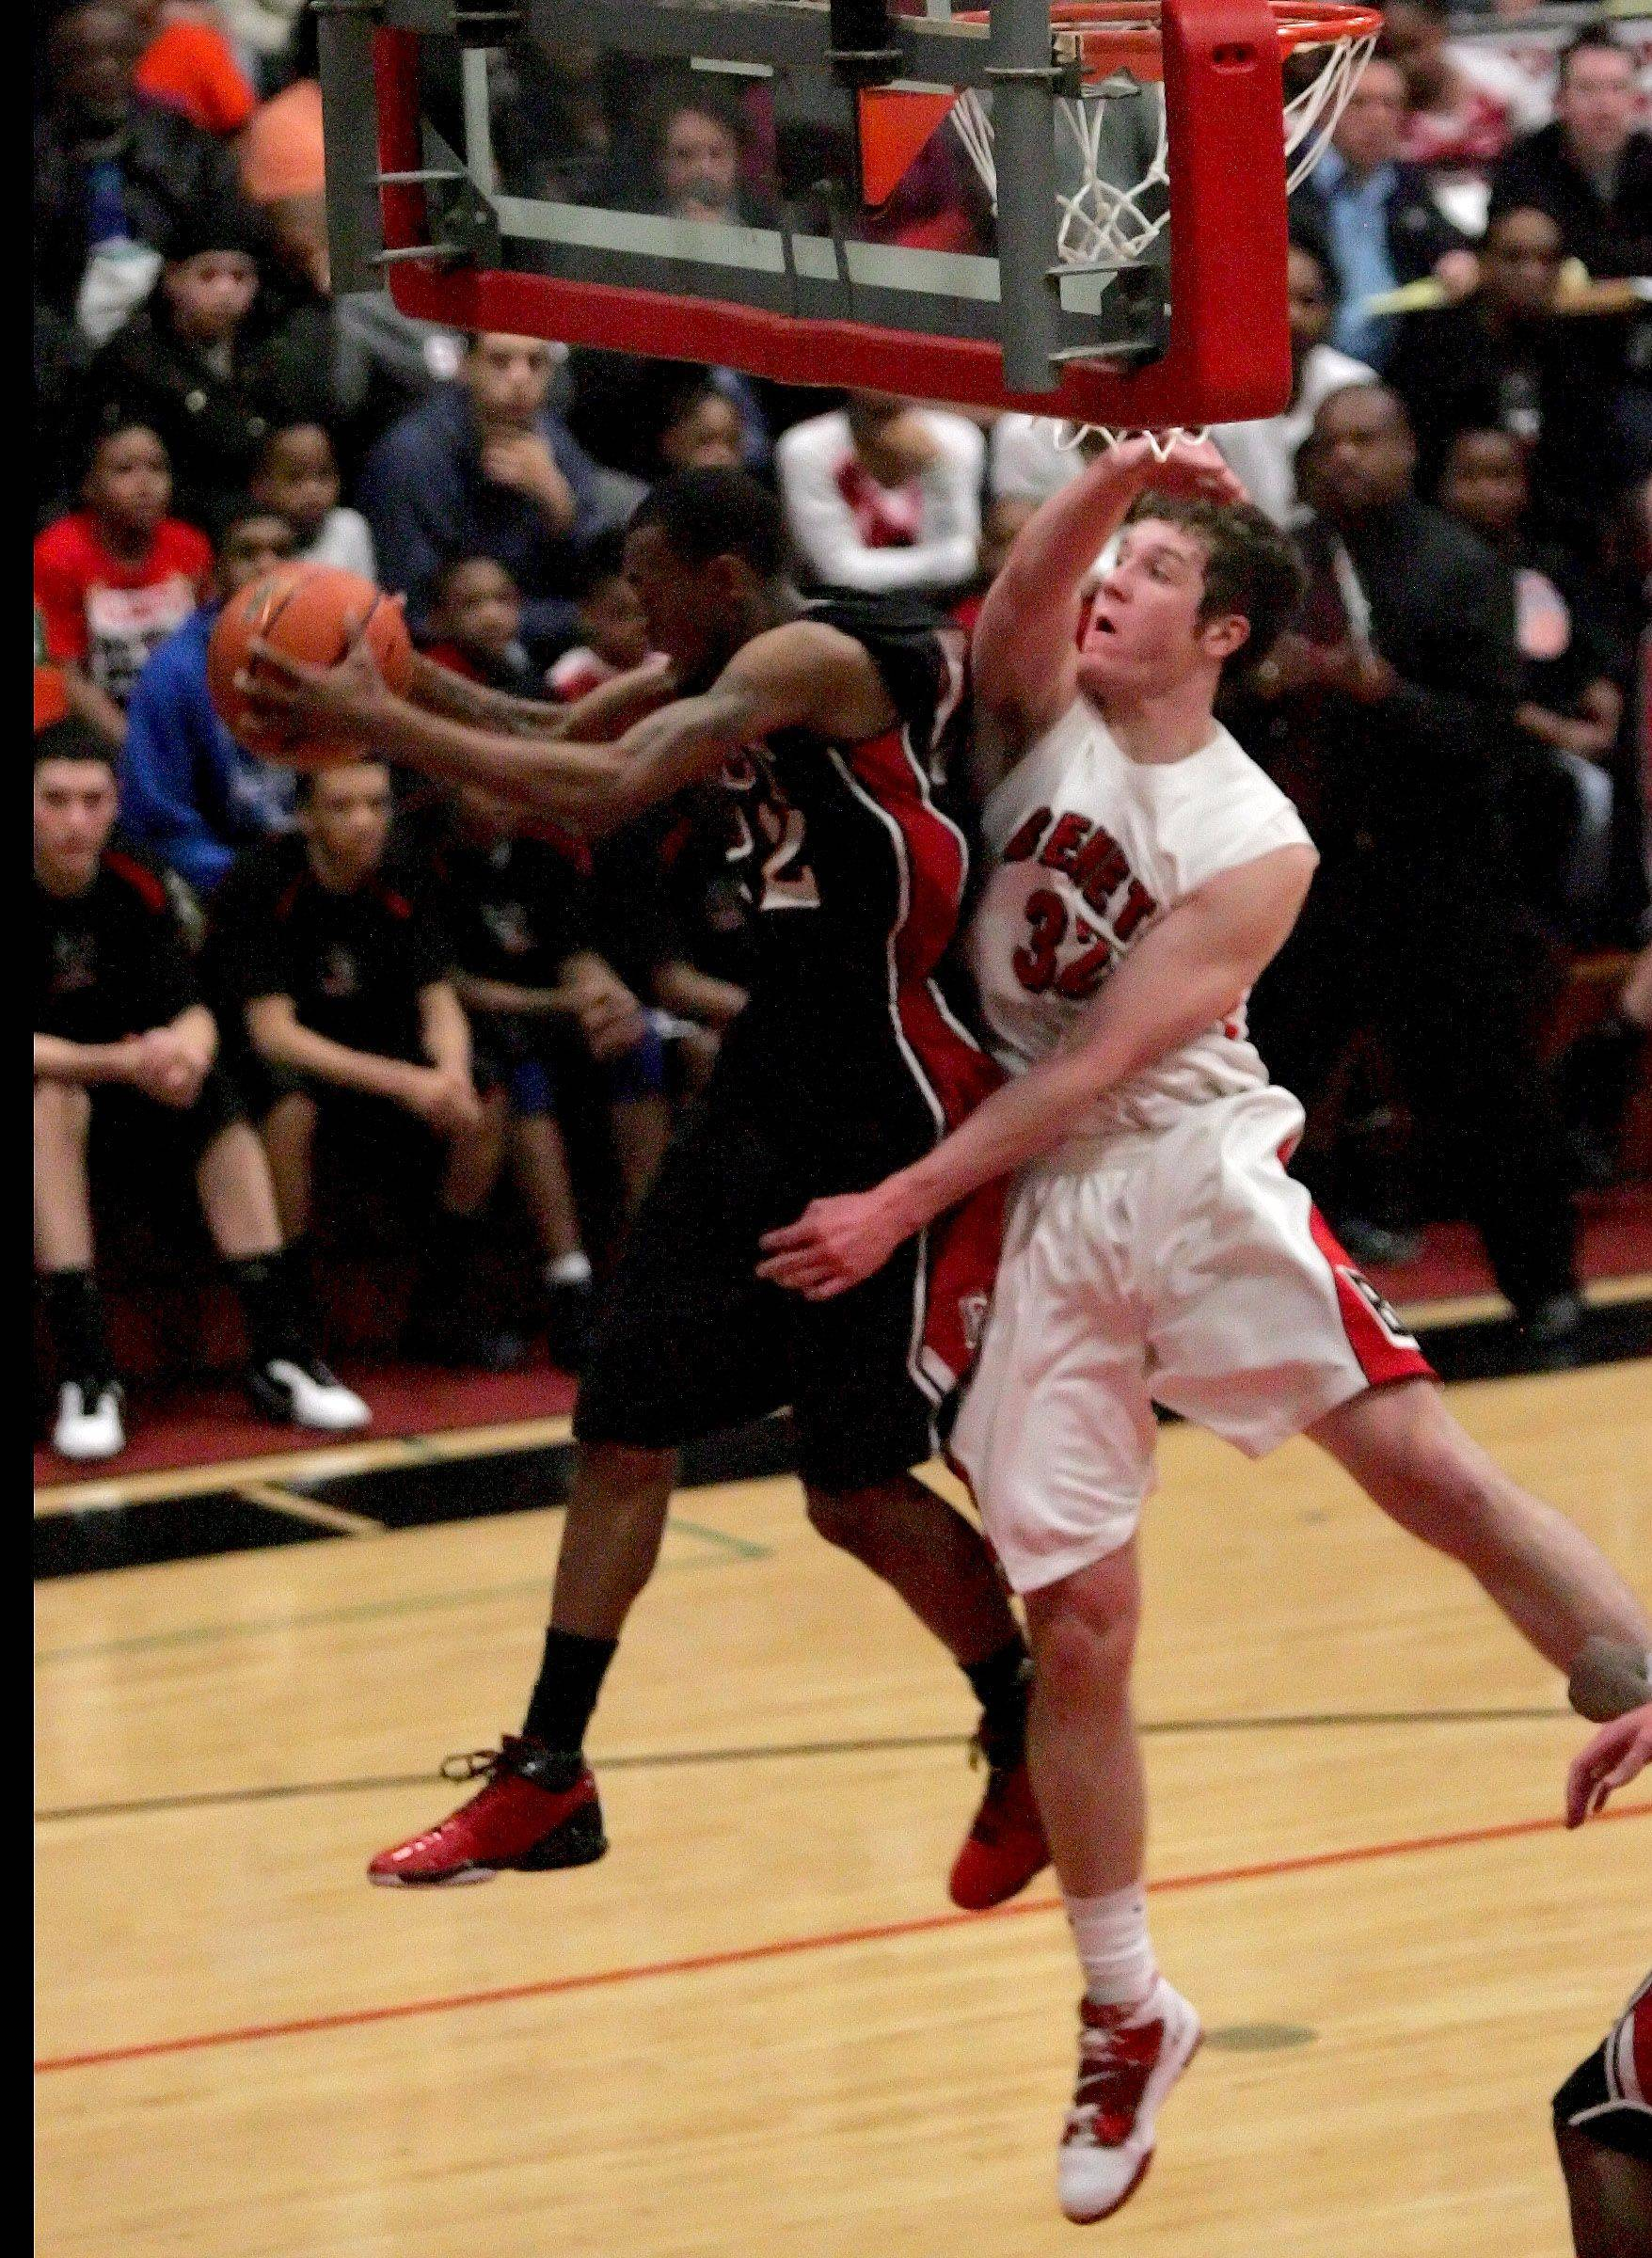 Ryan Boatright of East Aurora, left, grabs a rebound away from Pat McInerney of Benet Academy.